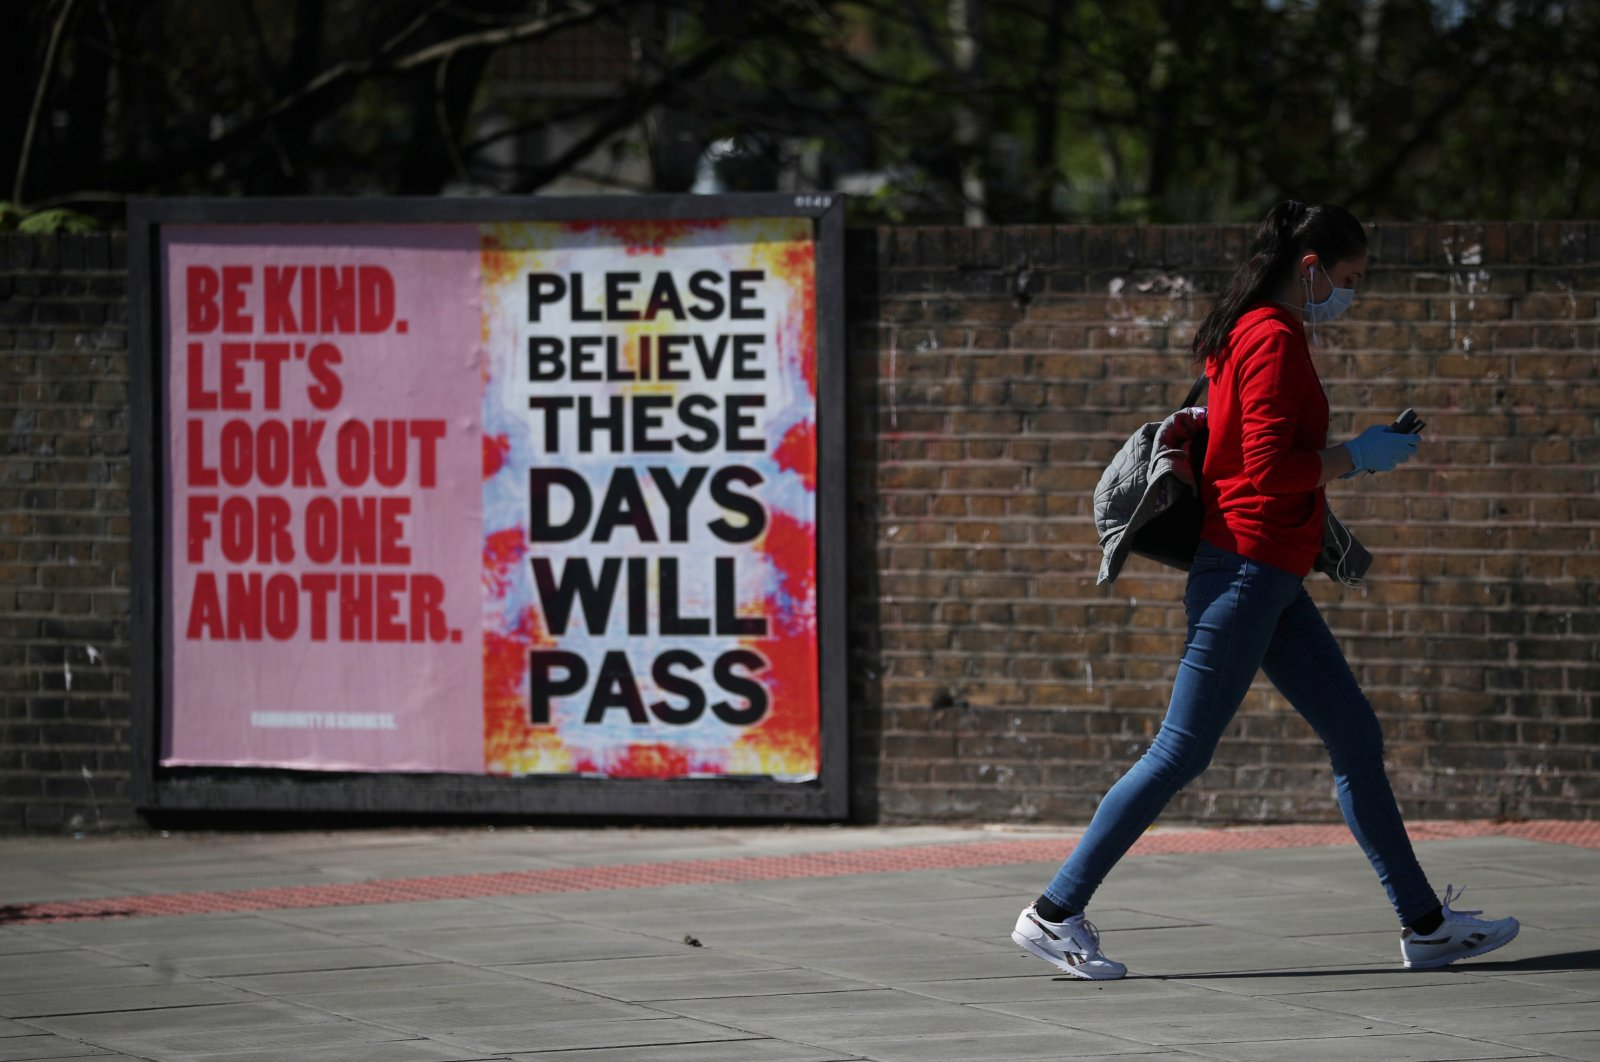 People walk past a poster in Stoke Newington as the spread of the coronavirus disease (COVID-19) continues, London, April 14, 2020. (REUTERS Photo)